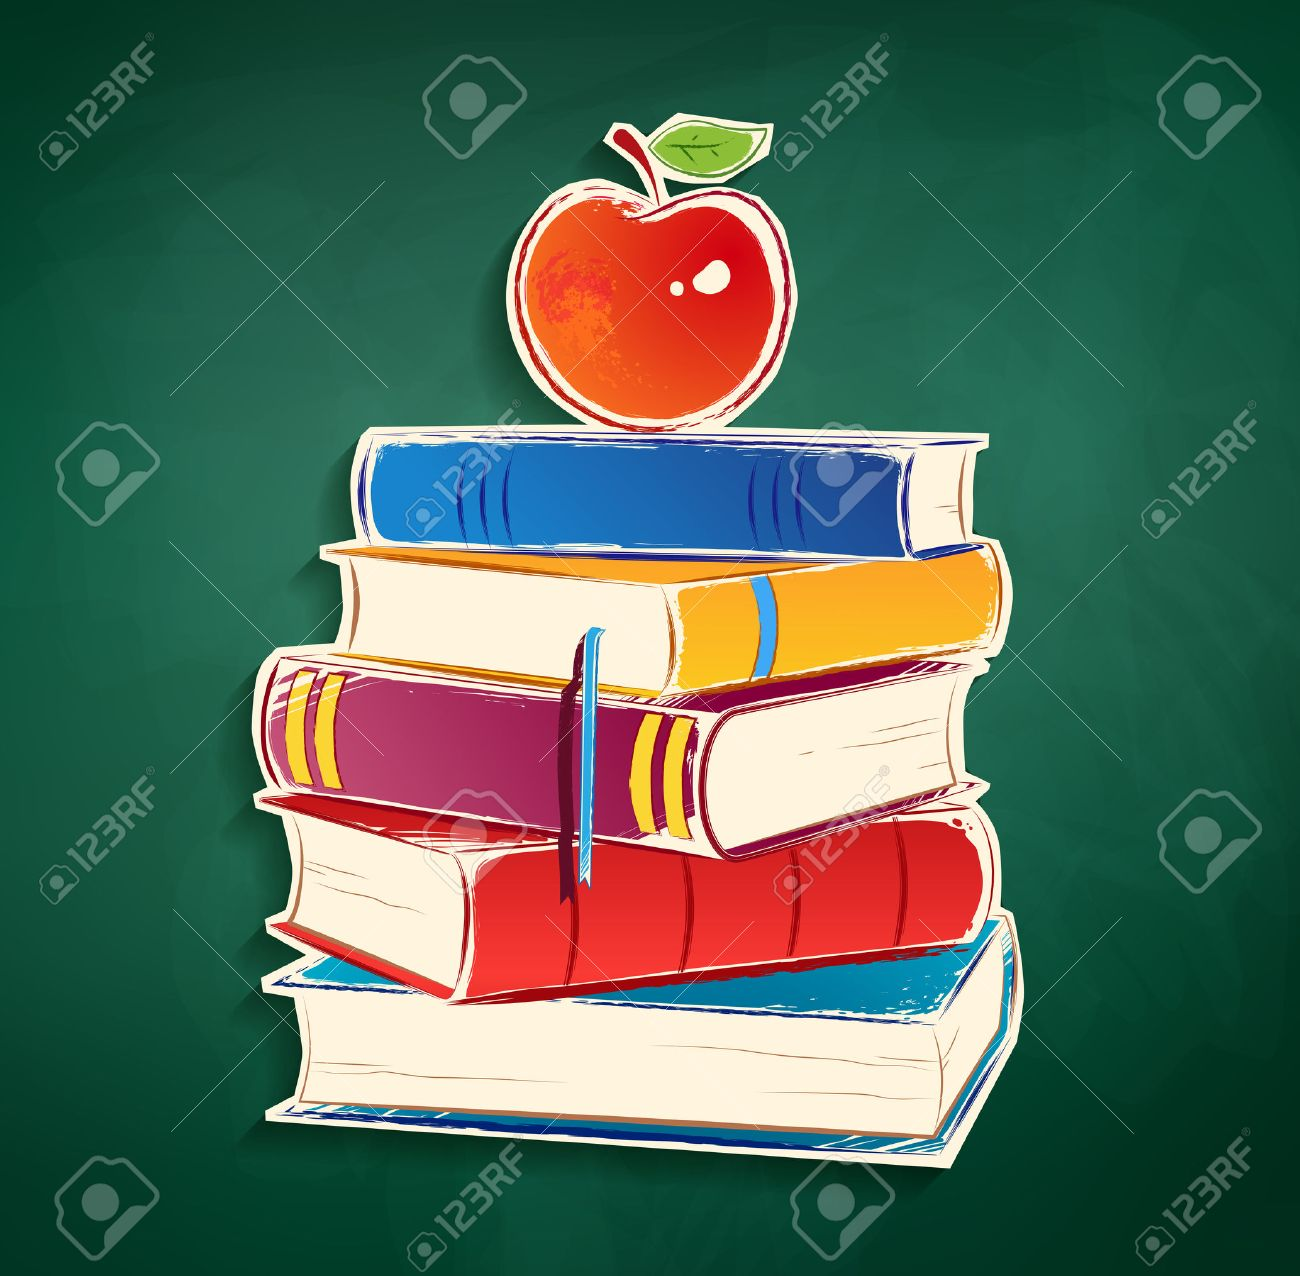 Sticker With Pile Of Books And Apple On Green Chalkboard Background Stock Vector